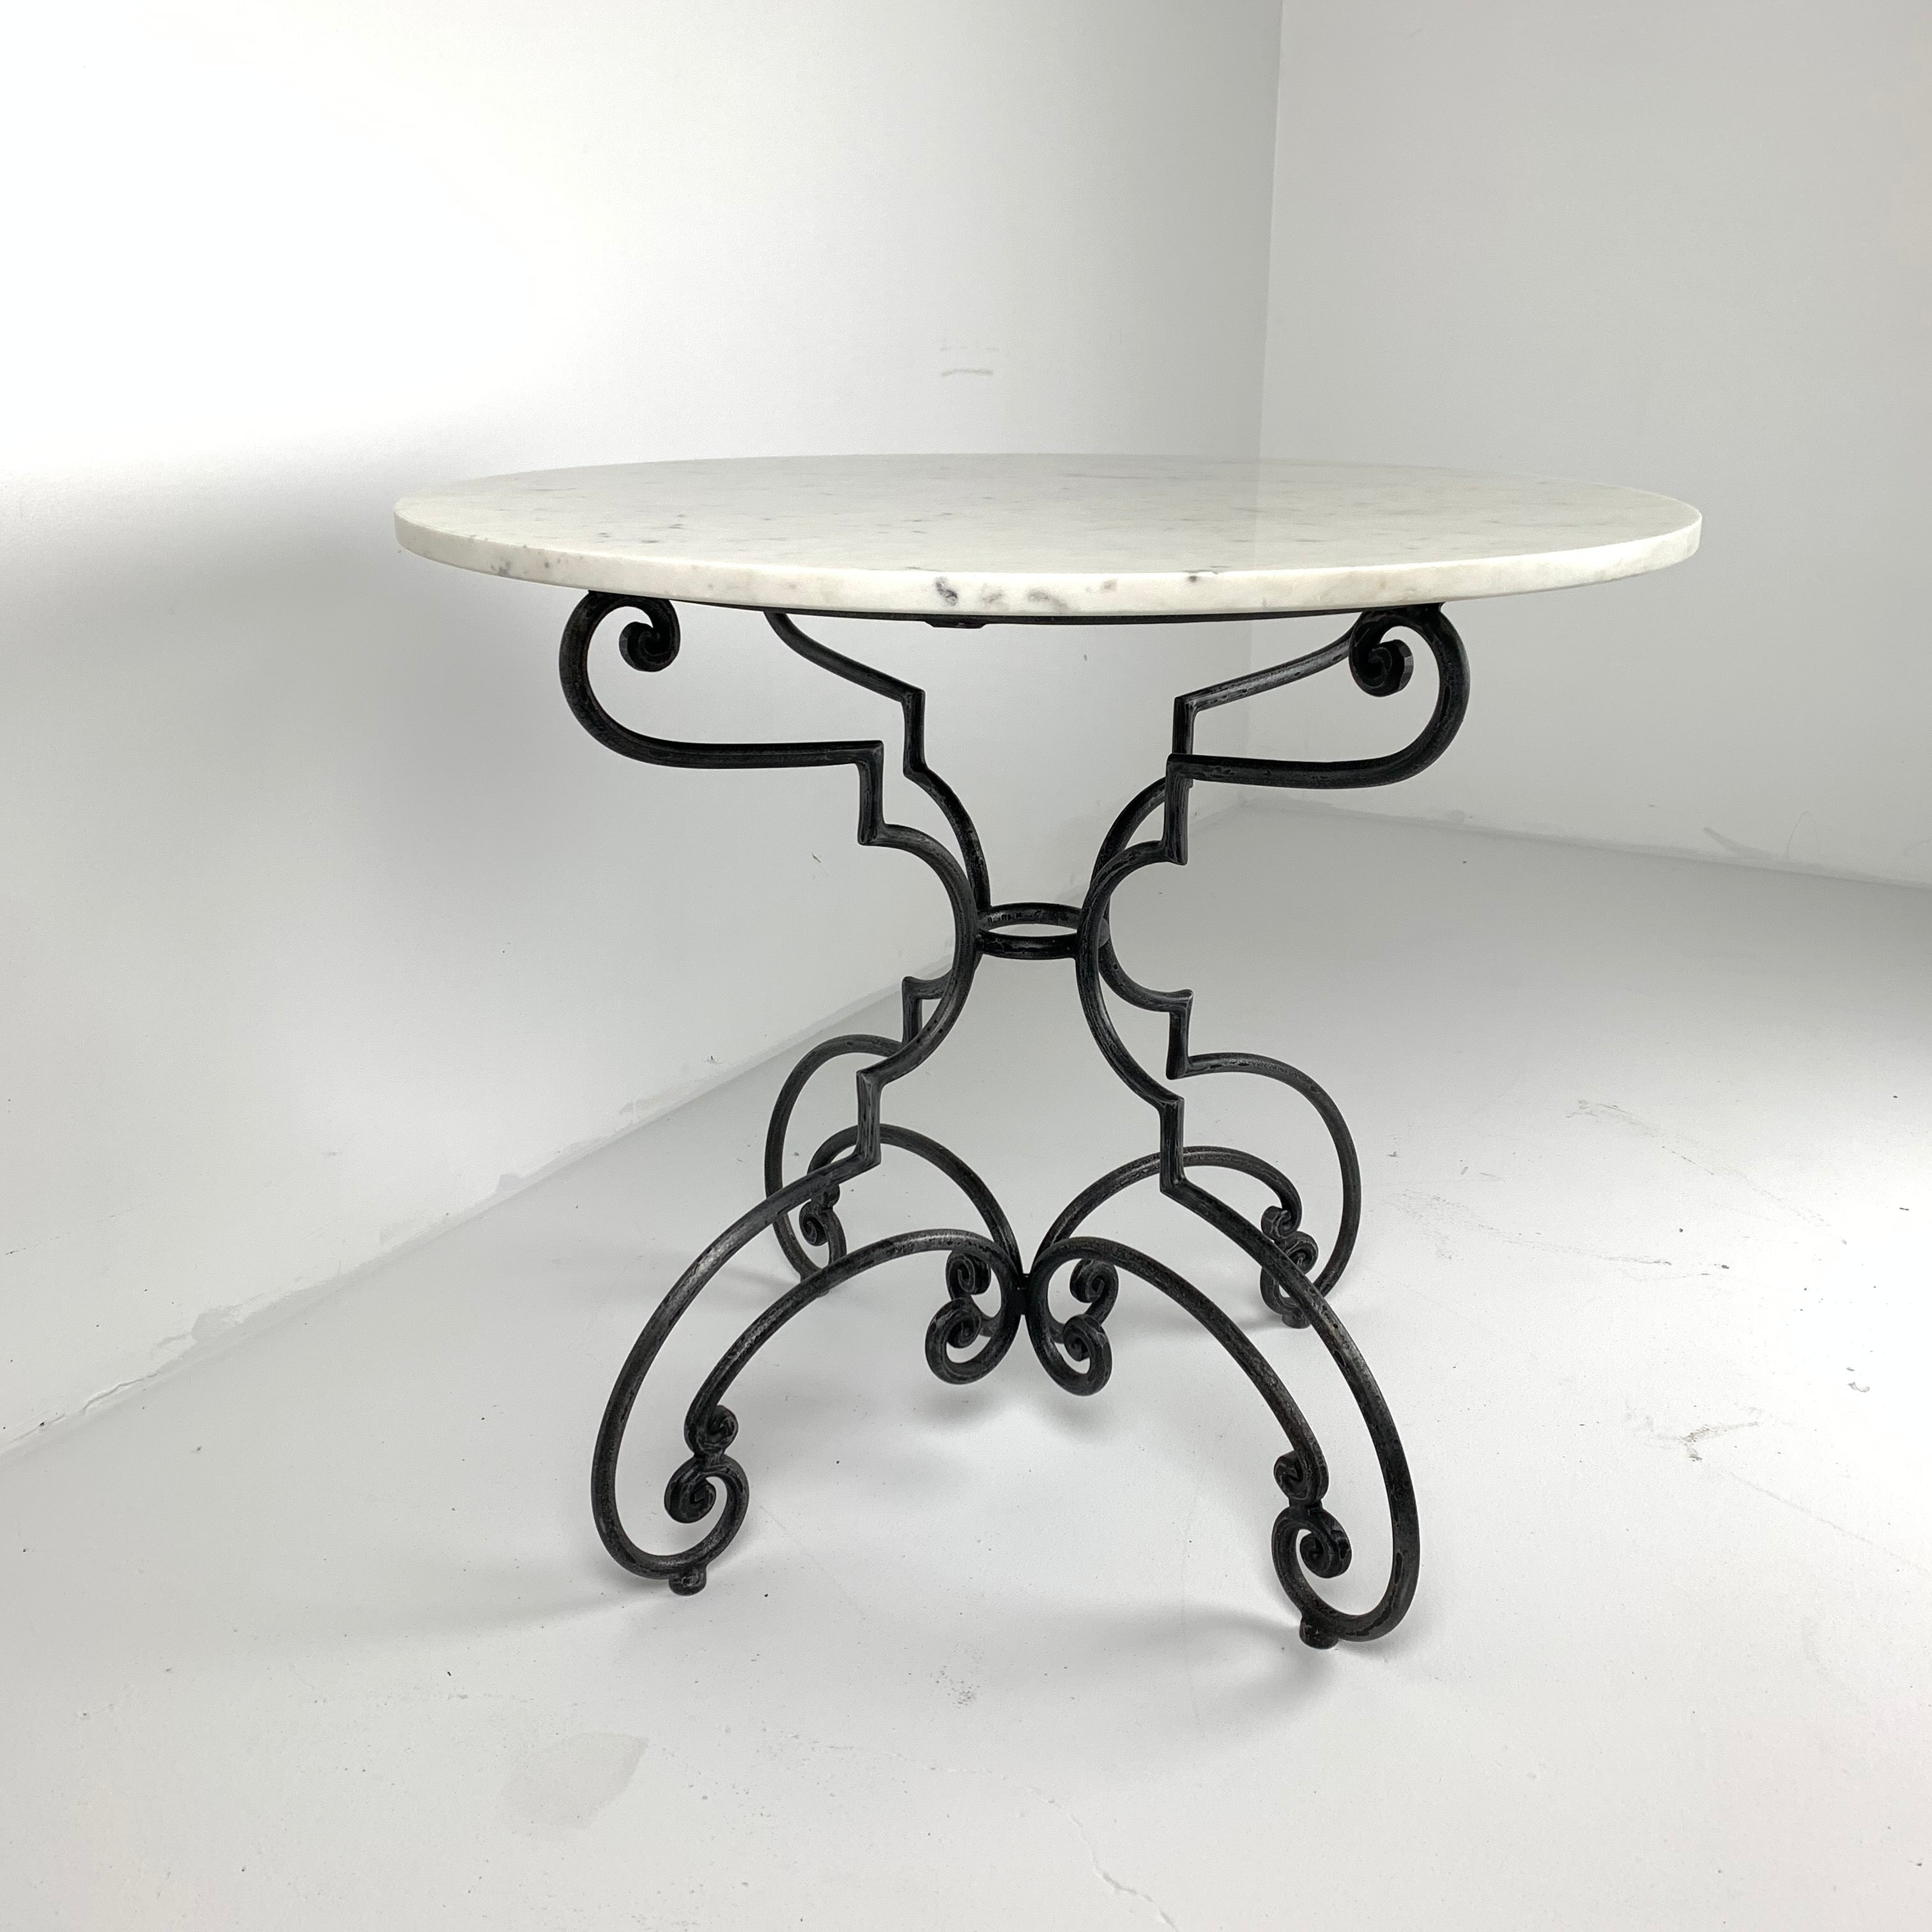 French Iron and Marble Table